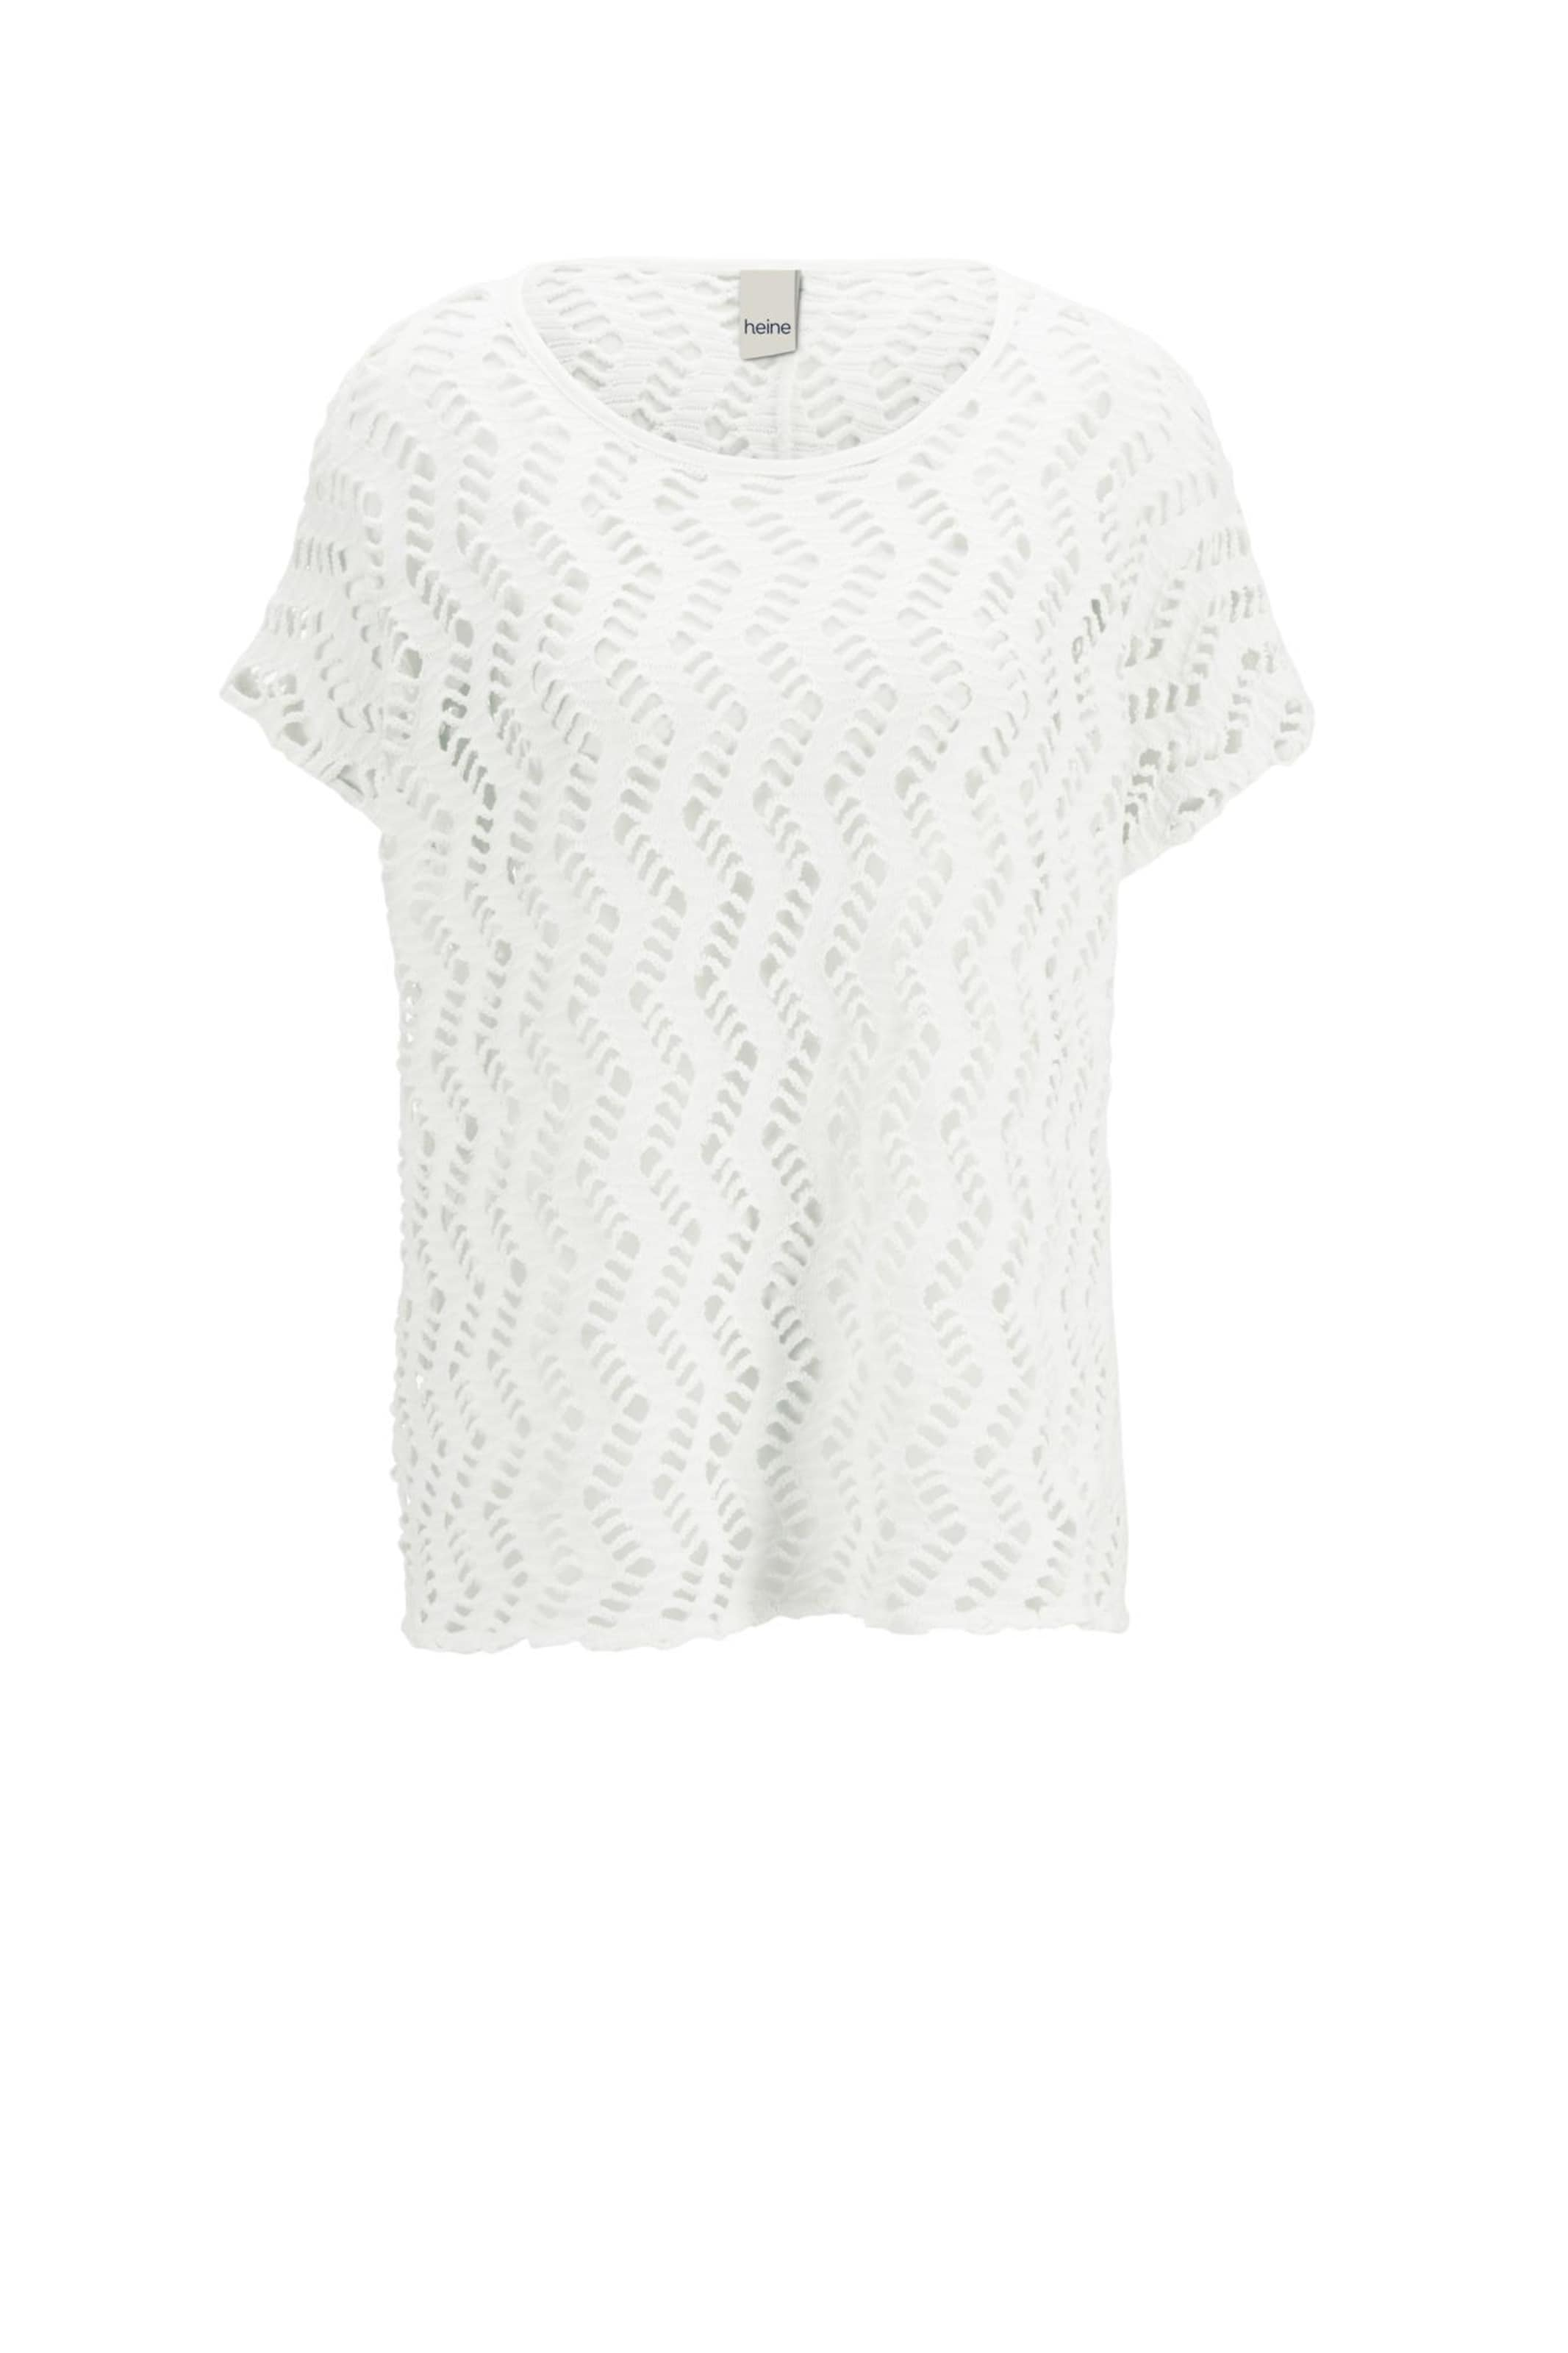 In Pullover 'casual' Offwhite In Heine Pullover Heine Pullover 'casual' Offwhite Heine 7f6gYbvy